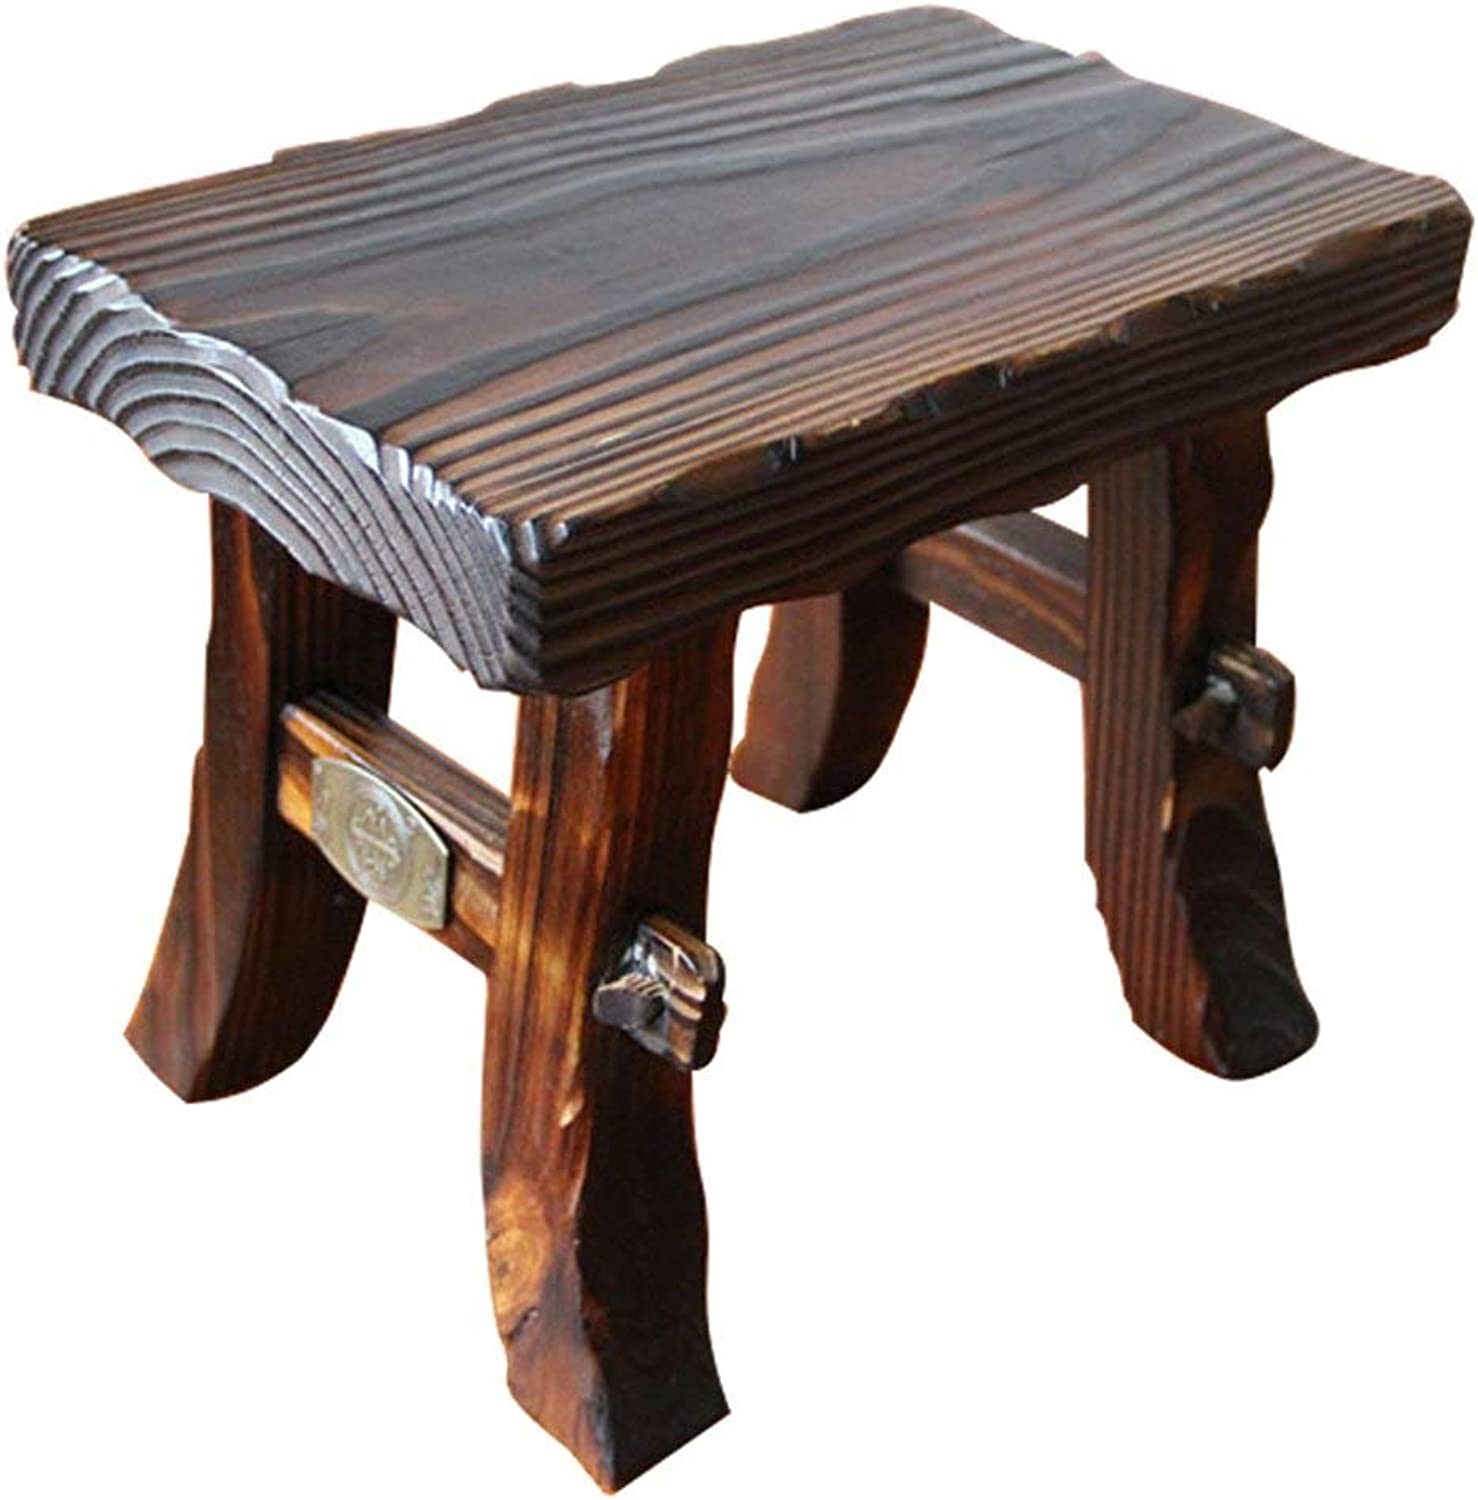 Home Stool, Solid Wood Small Stool, Small Square Stool, Small Wooden Stool, shoes Stool, Coffee Table Stool